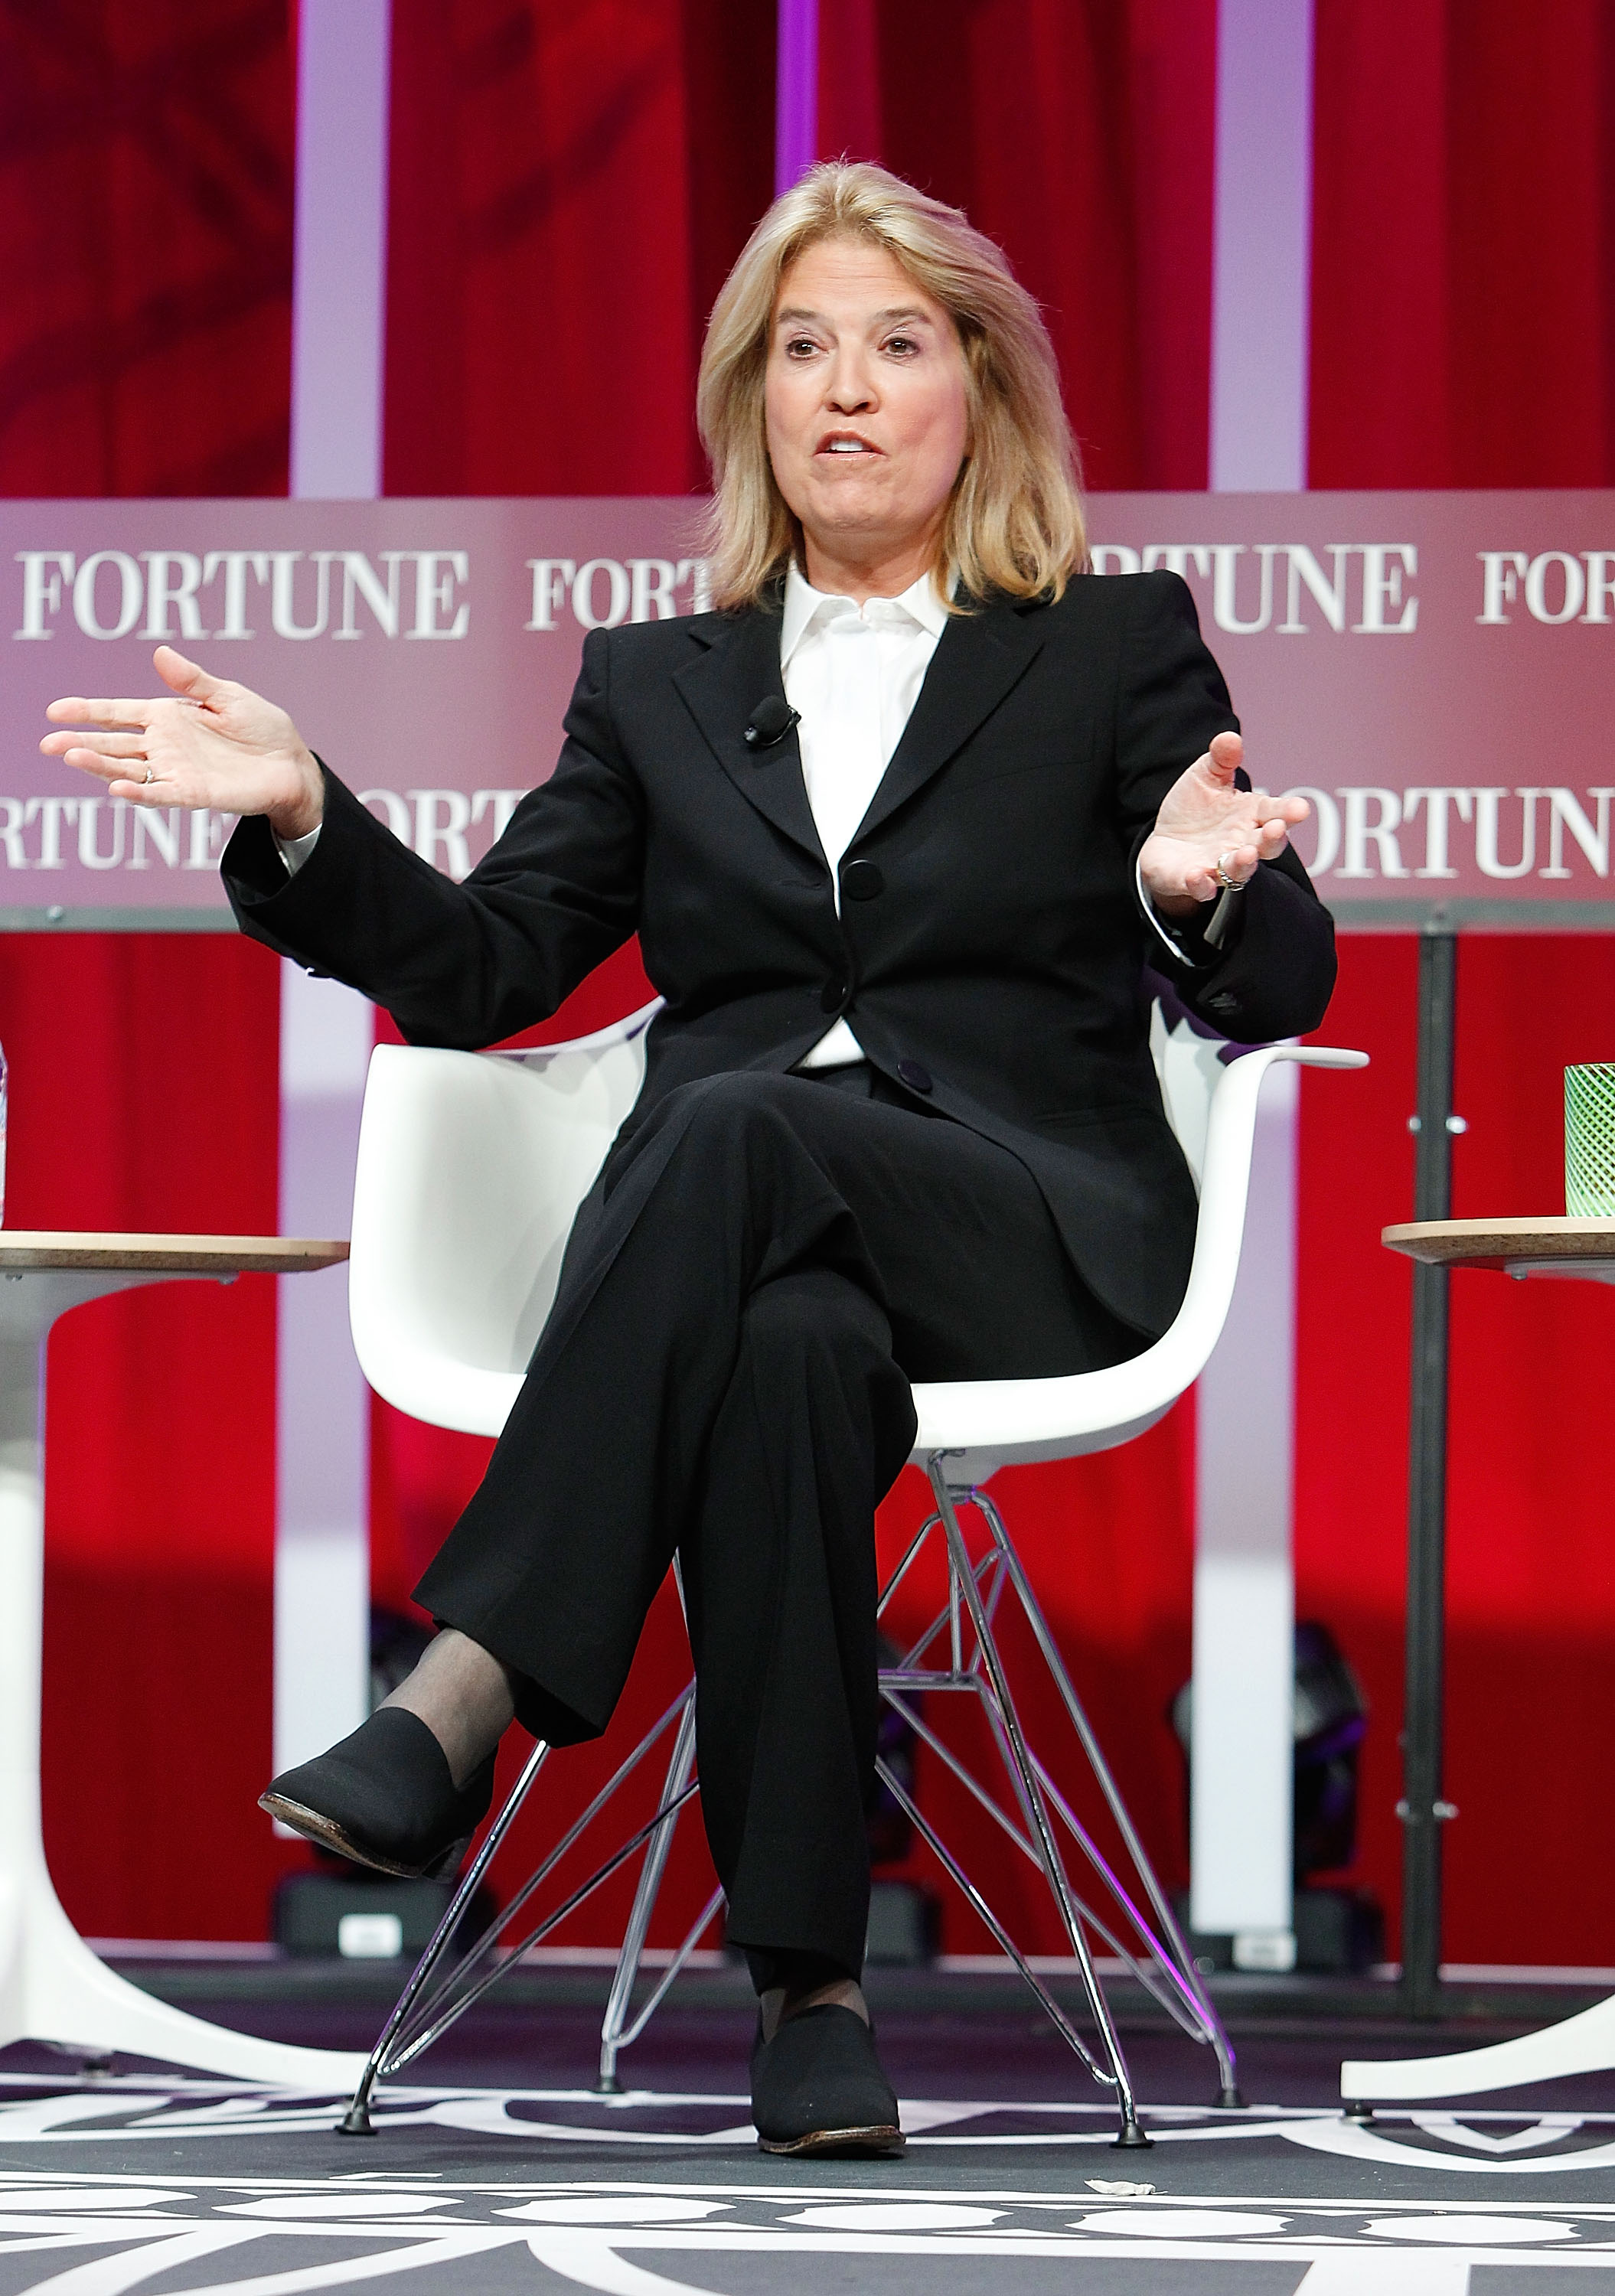 Fortune's Most Powerful Women Summit - Day 3